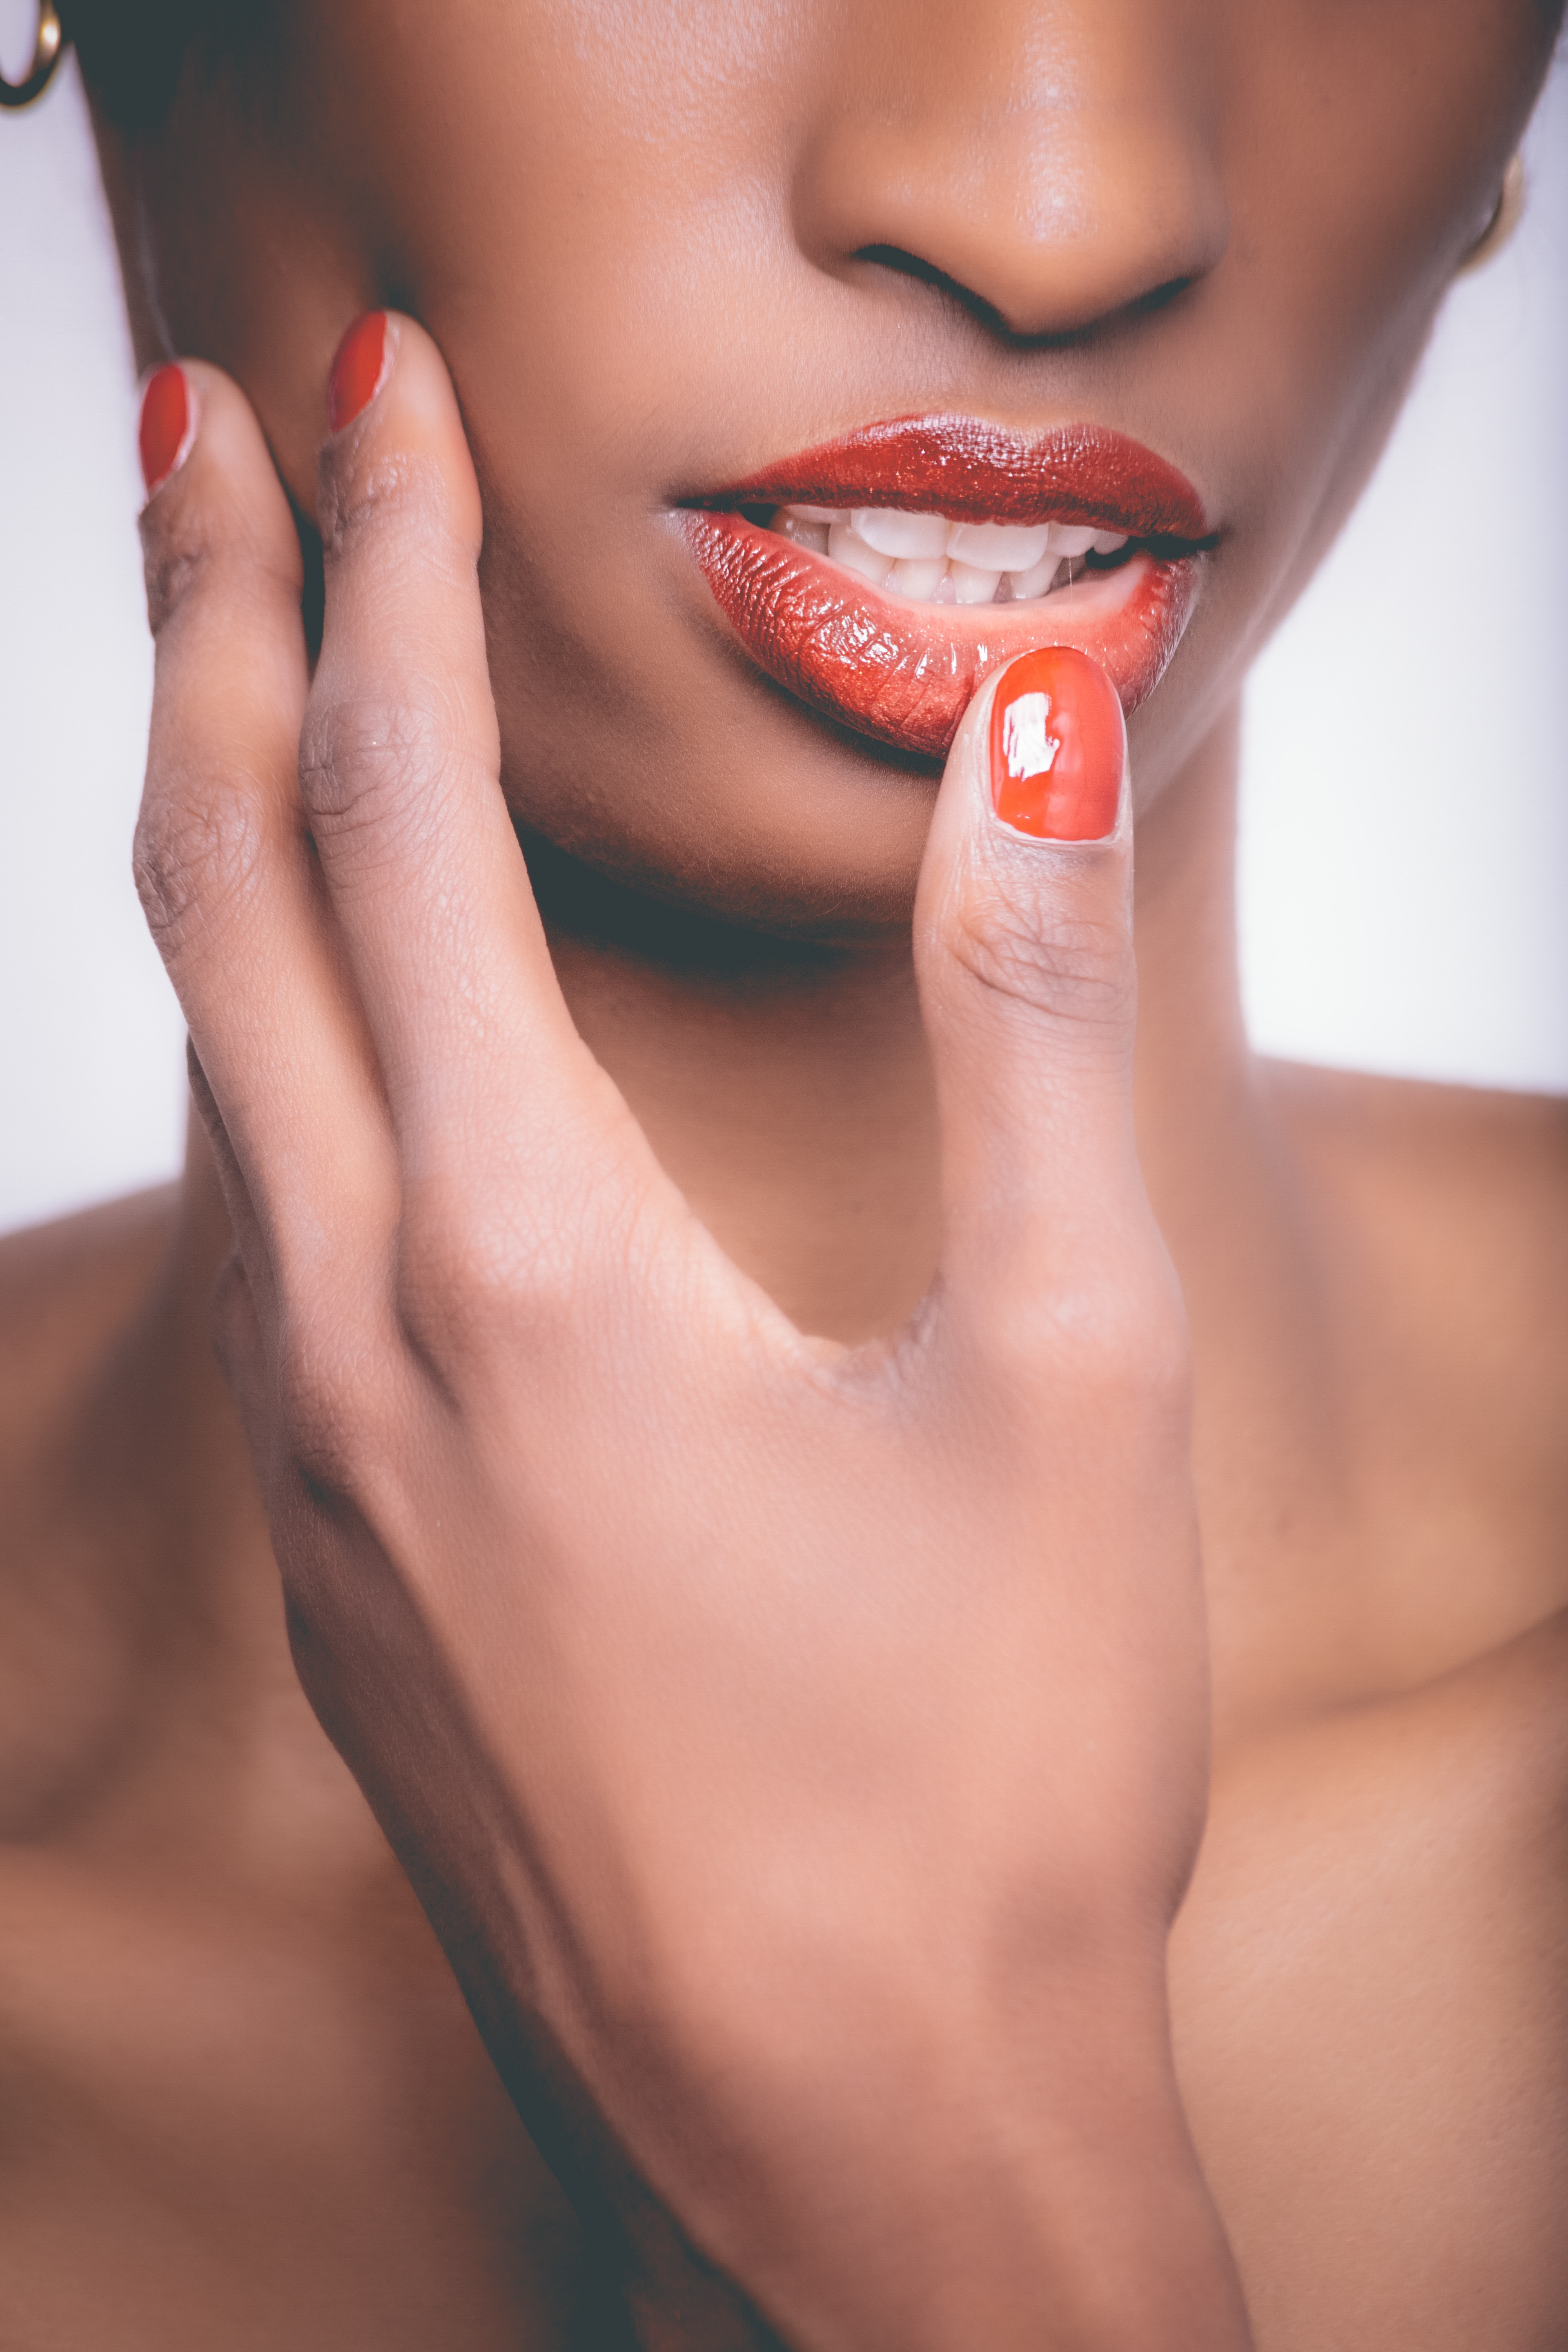 Woman With Red Lipstick and Red Manicure, Nose, Young, Woman, Teeth, HQ Photo